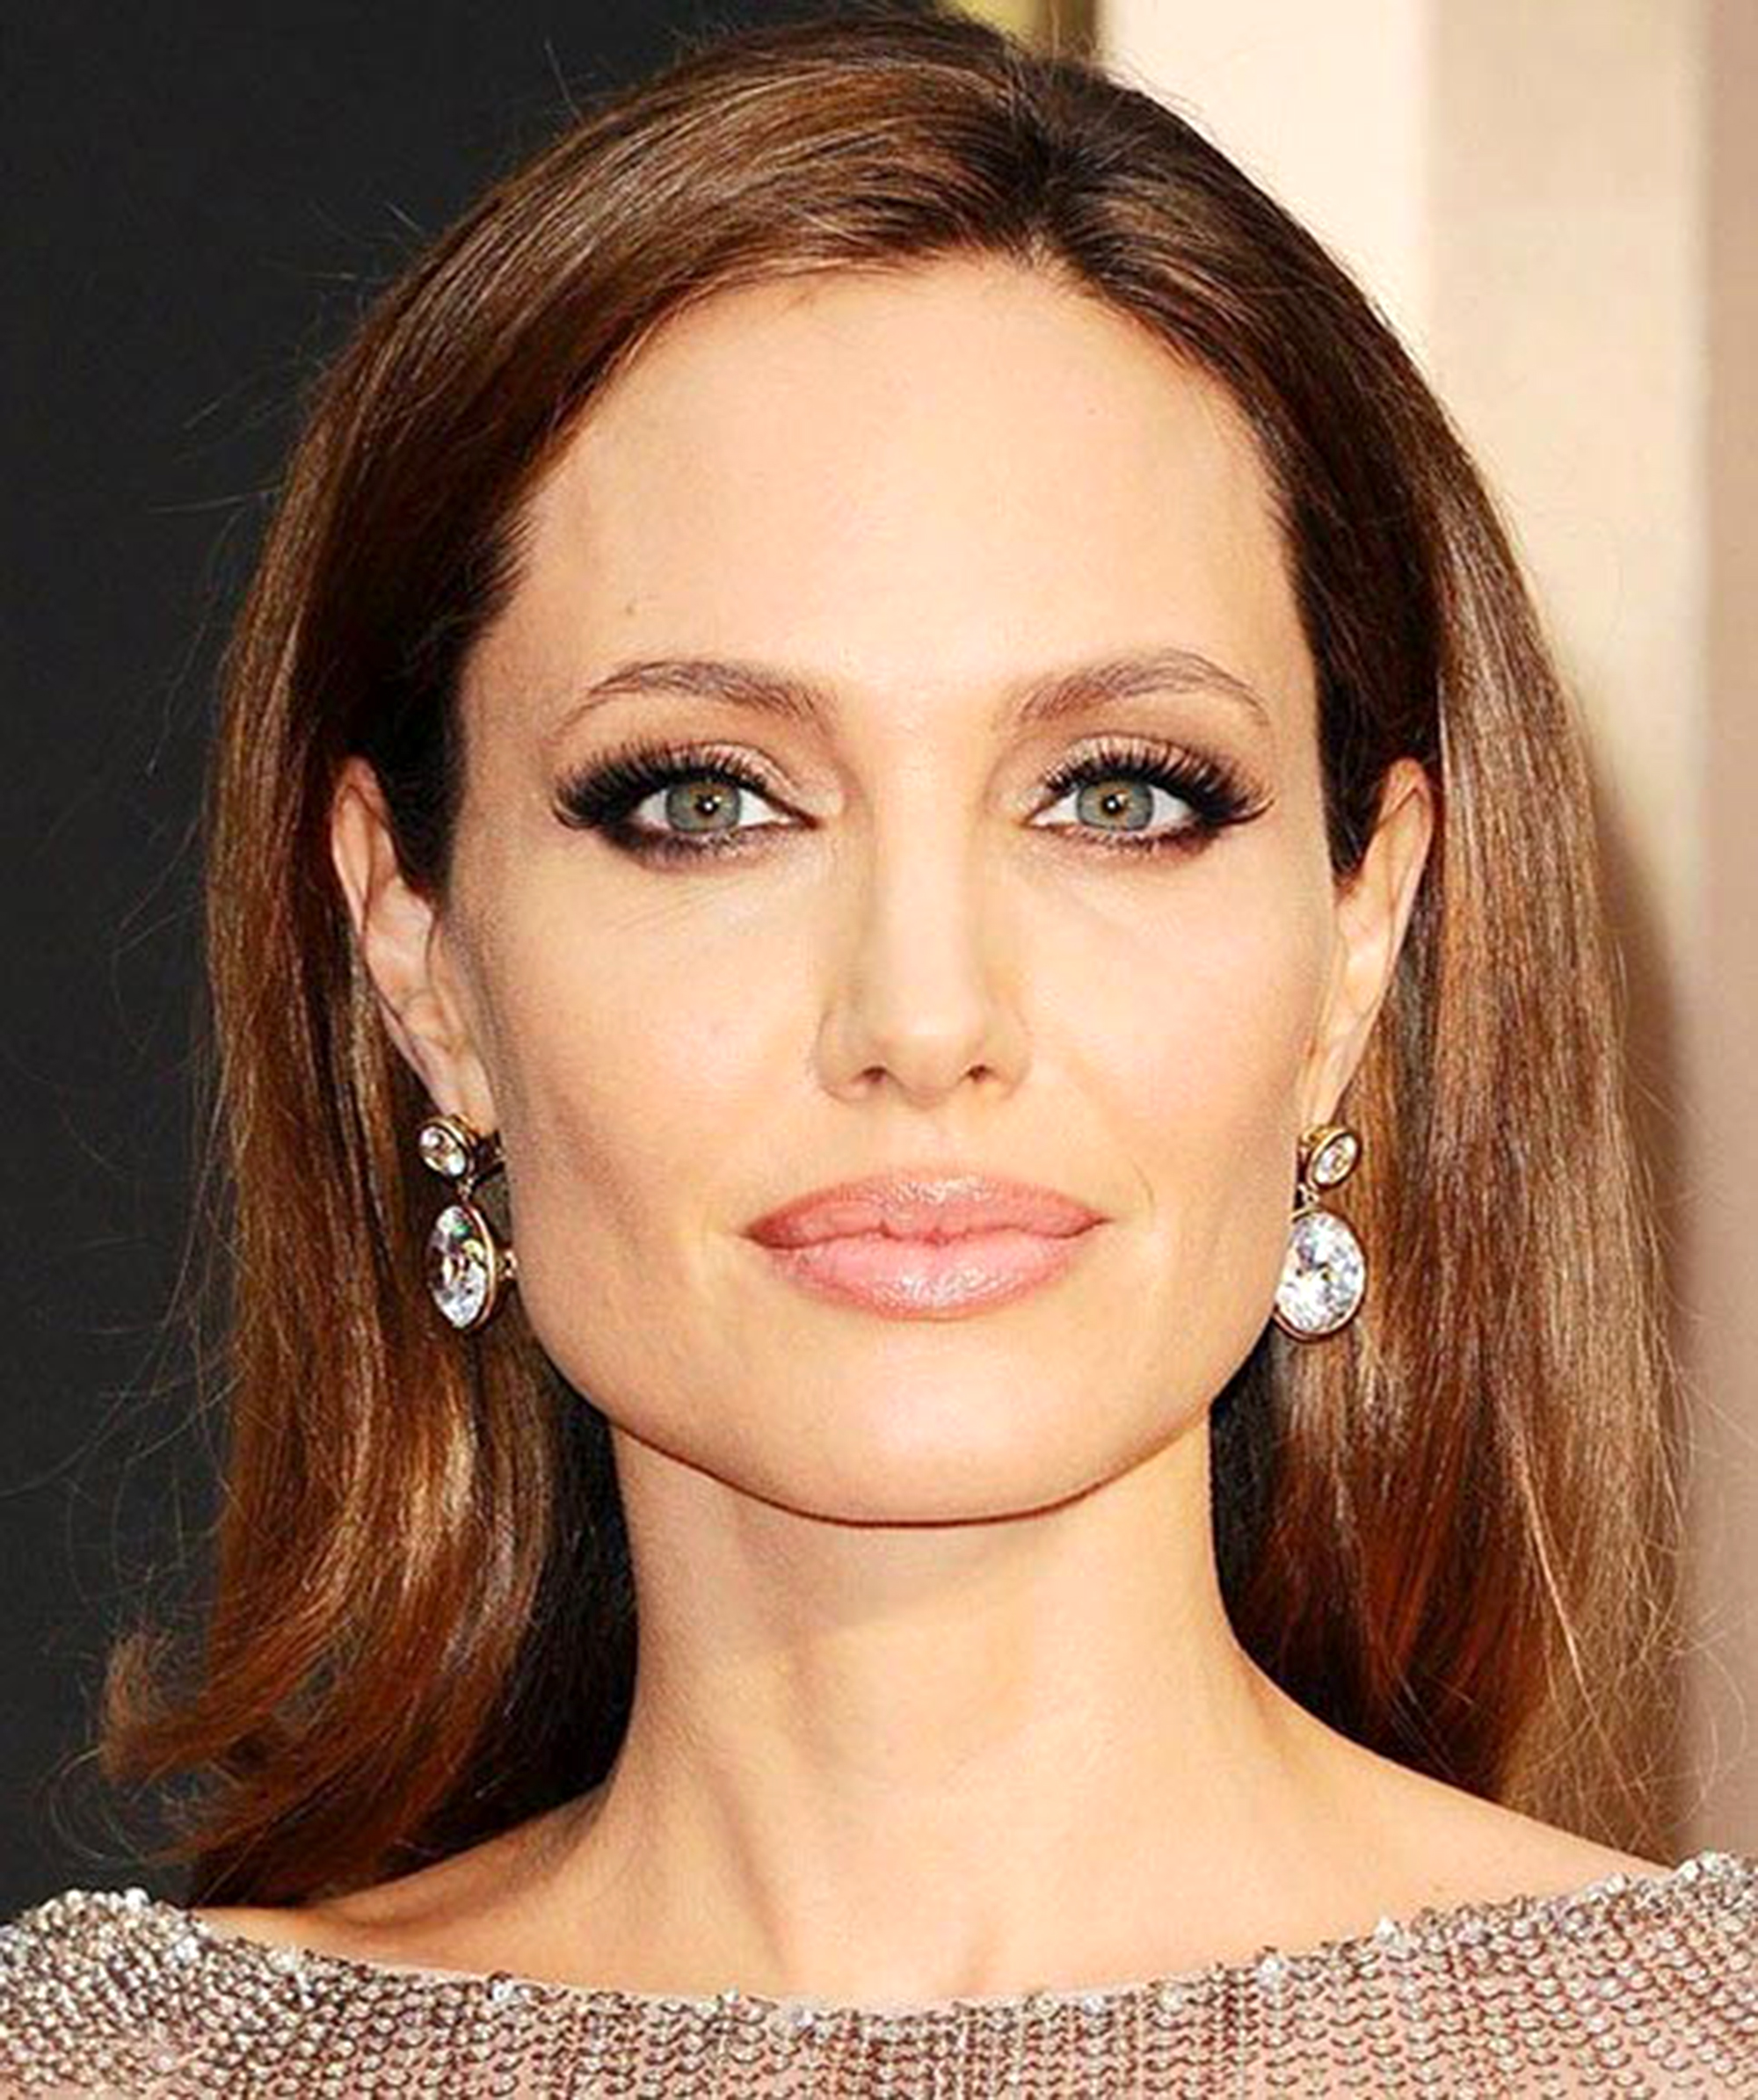 The Look: Angelina Jolie (Inspired by the Oscars)